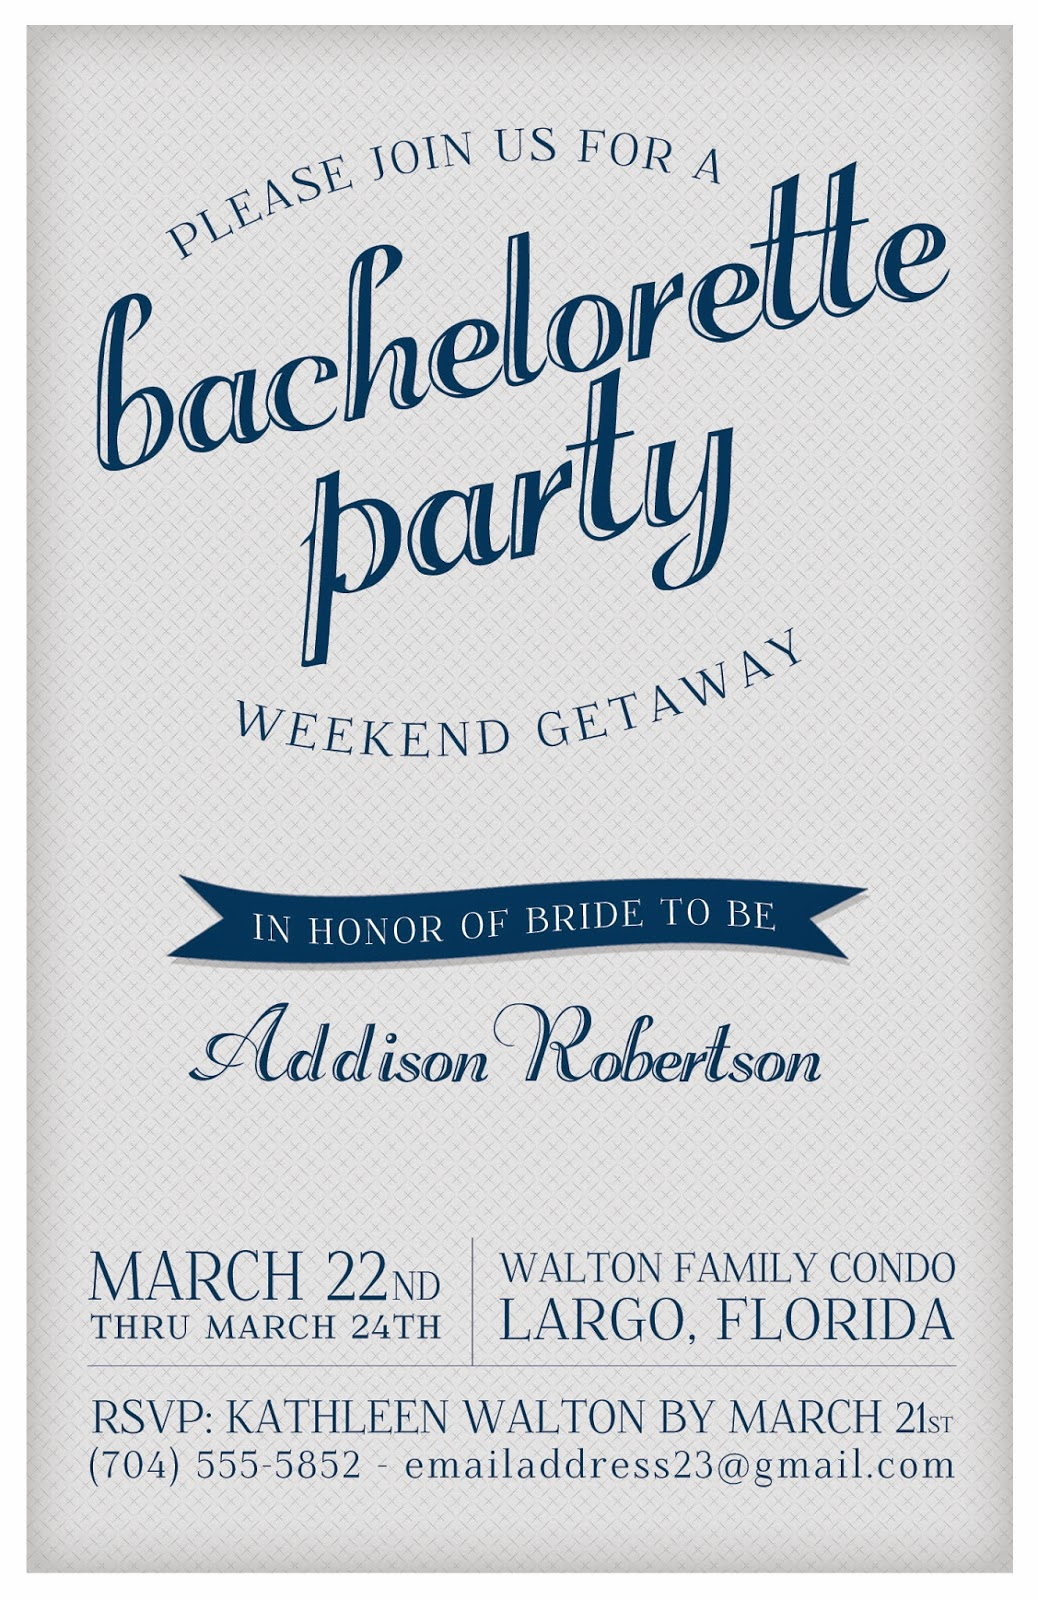 Free Bachelorette Party Invitations and get inspiration to create nice invitation ideas